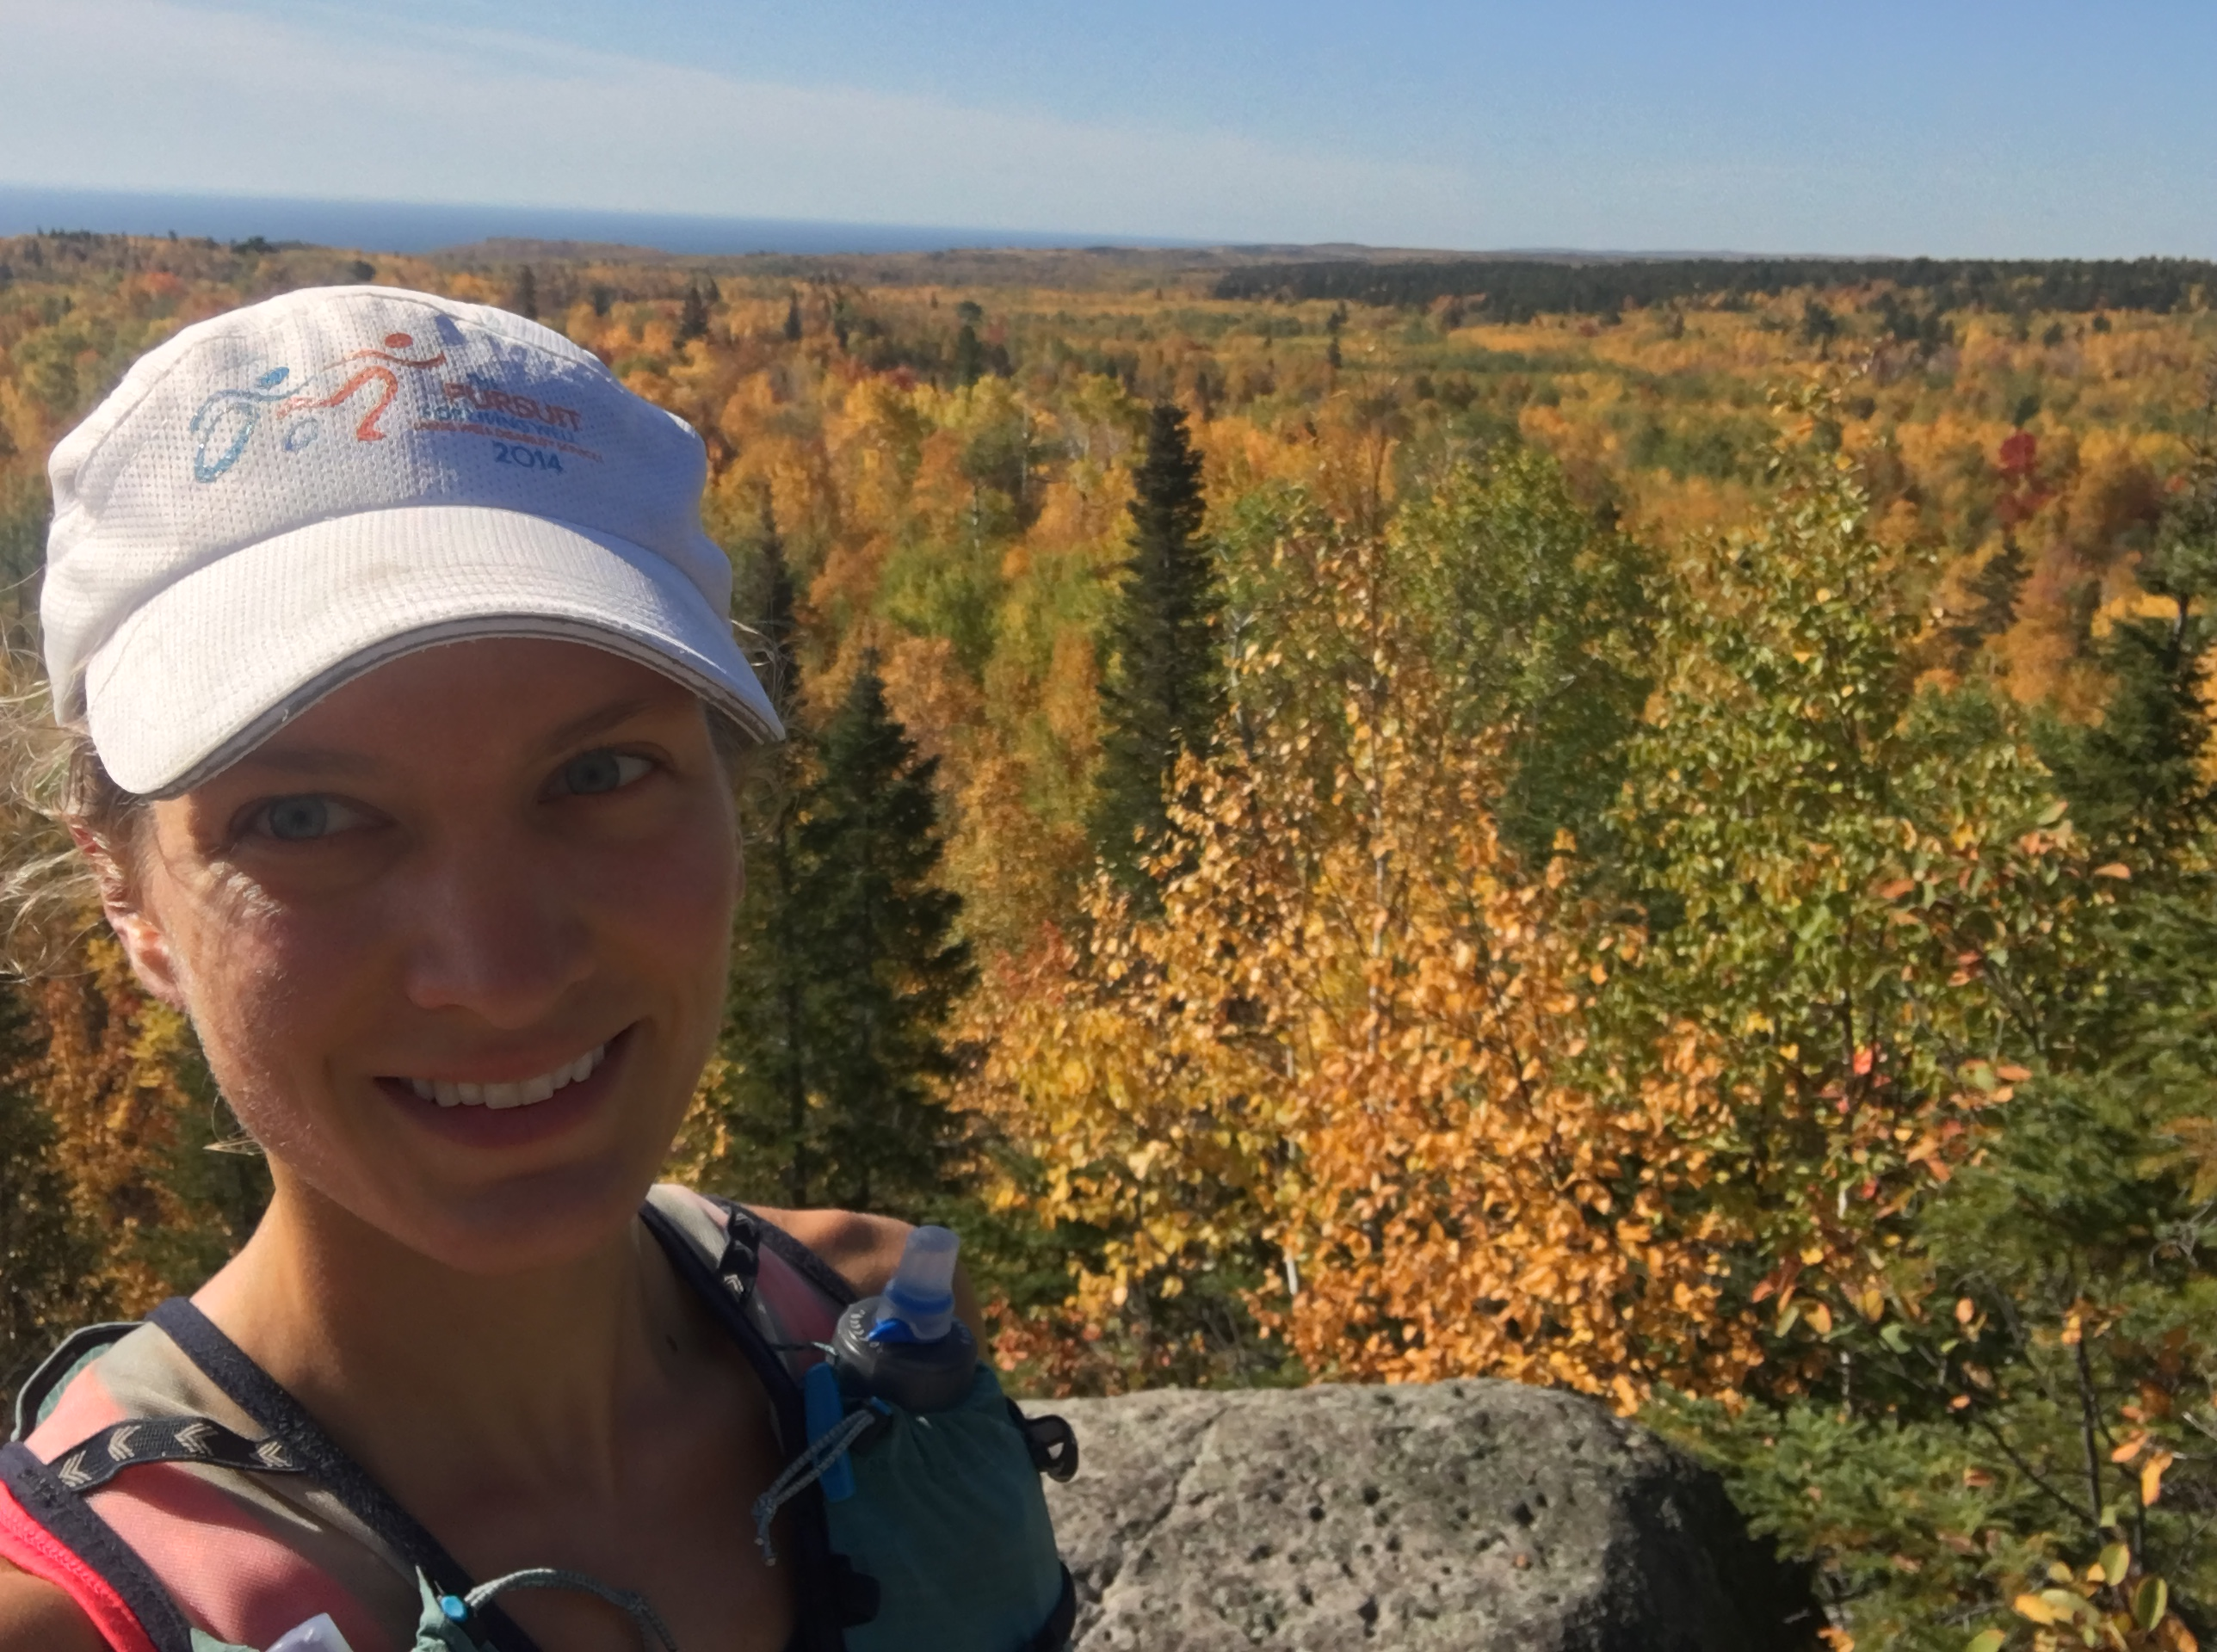 A trailrunner on a ridge with fall colors in the background